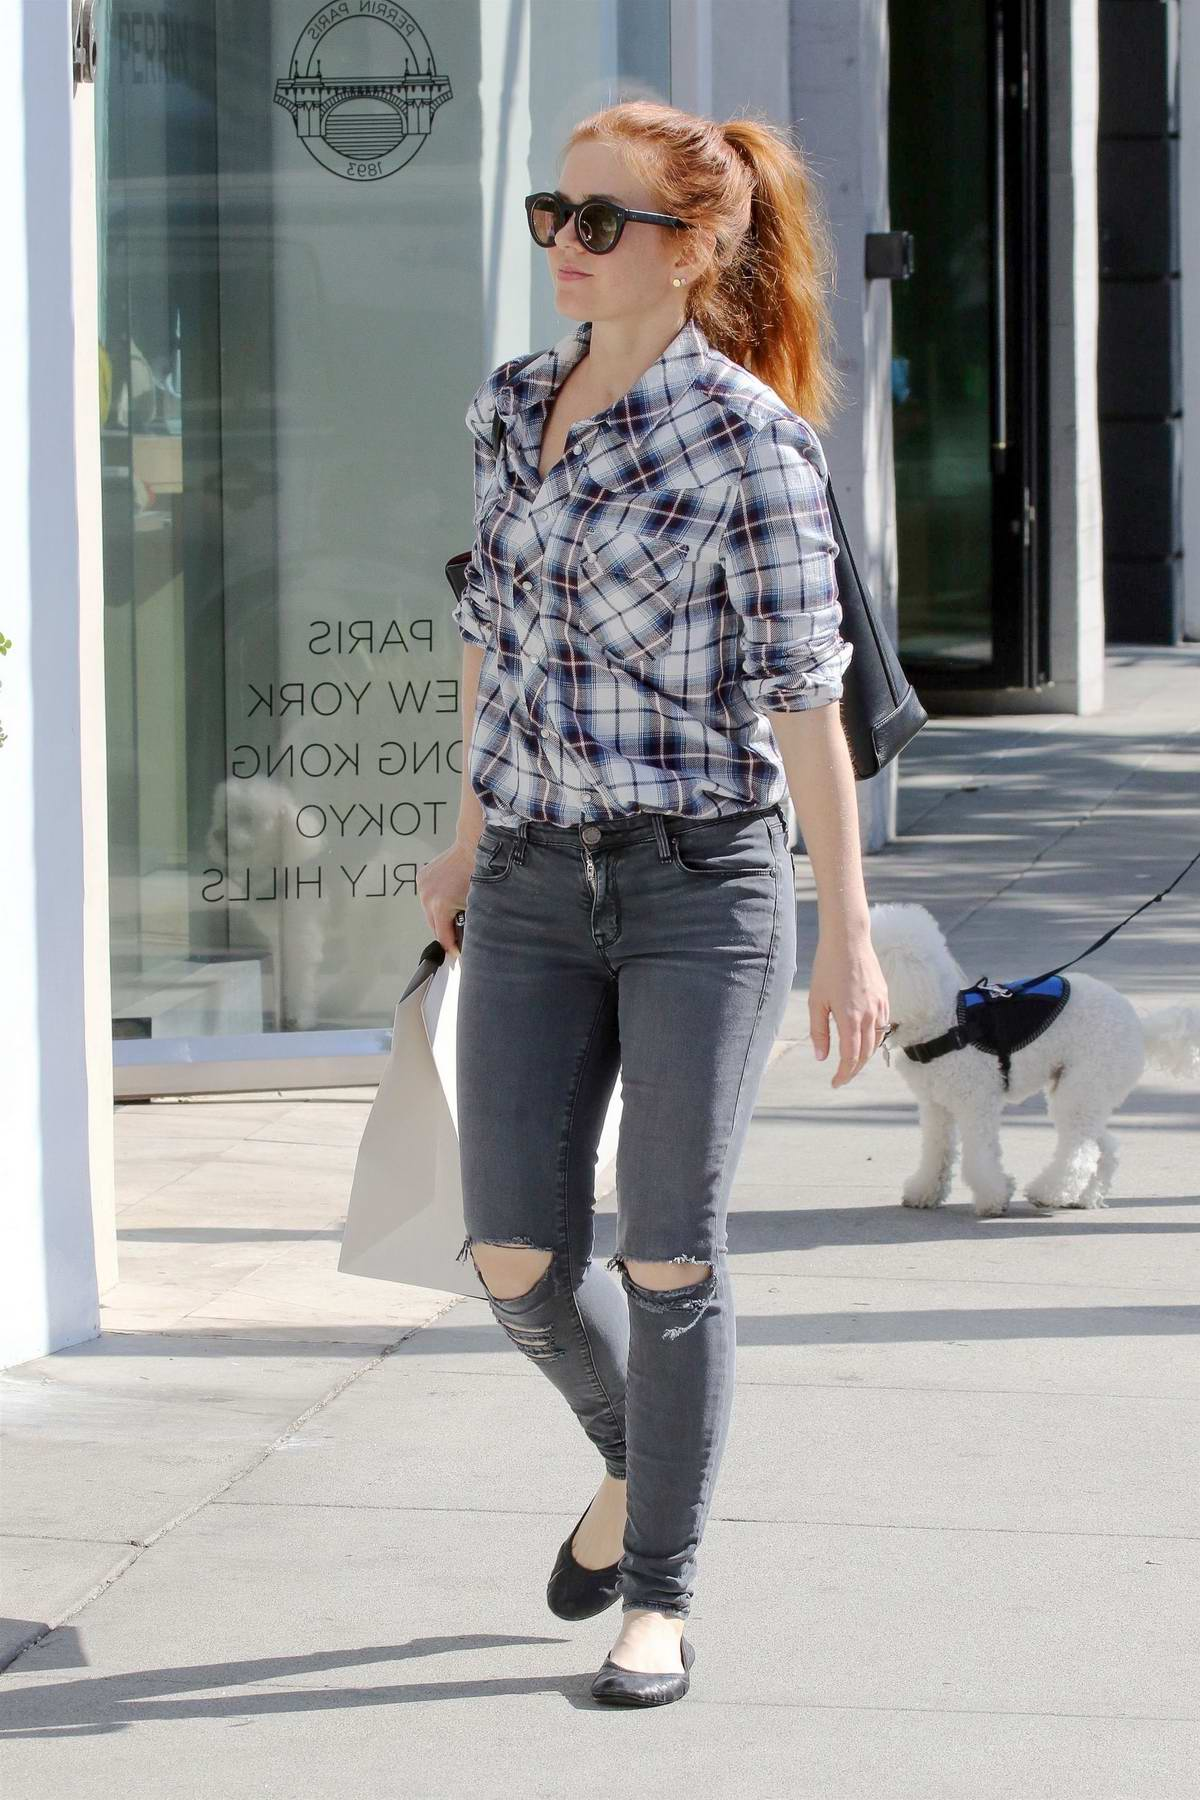 Isla Fisher rocks a plaid shirt while out shopping in Beverly Hills, Los Angeles